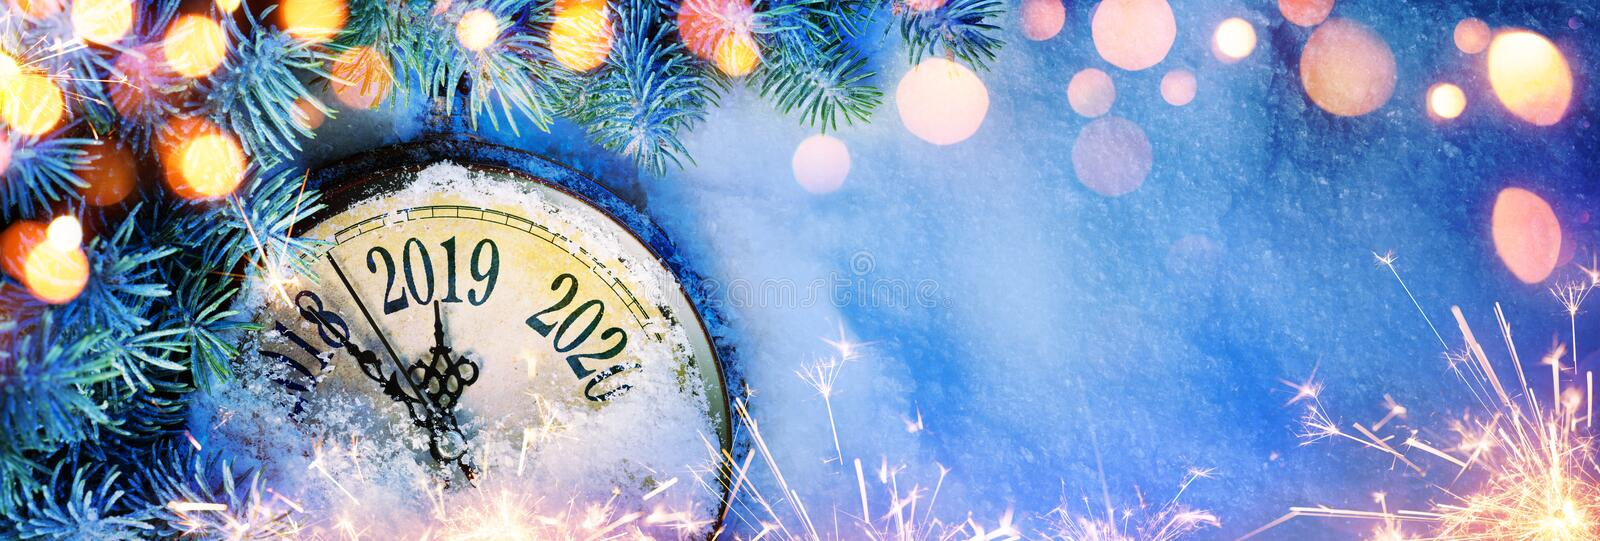 New Year 2019 - Celebration With Dial Clock On Snow vector illustration